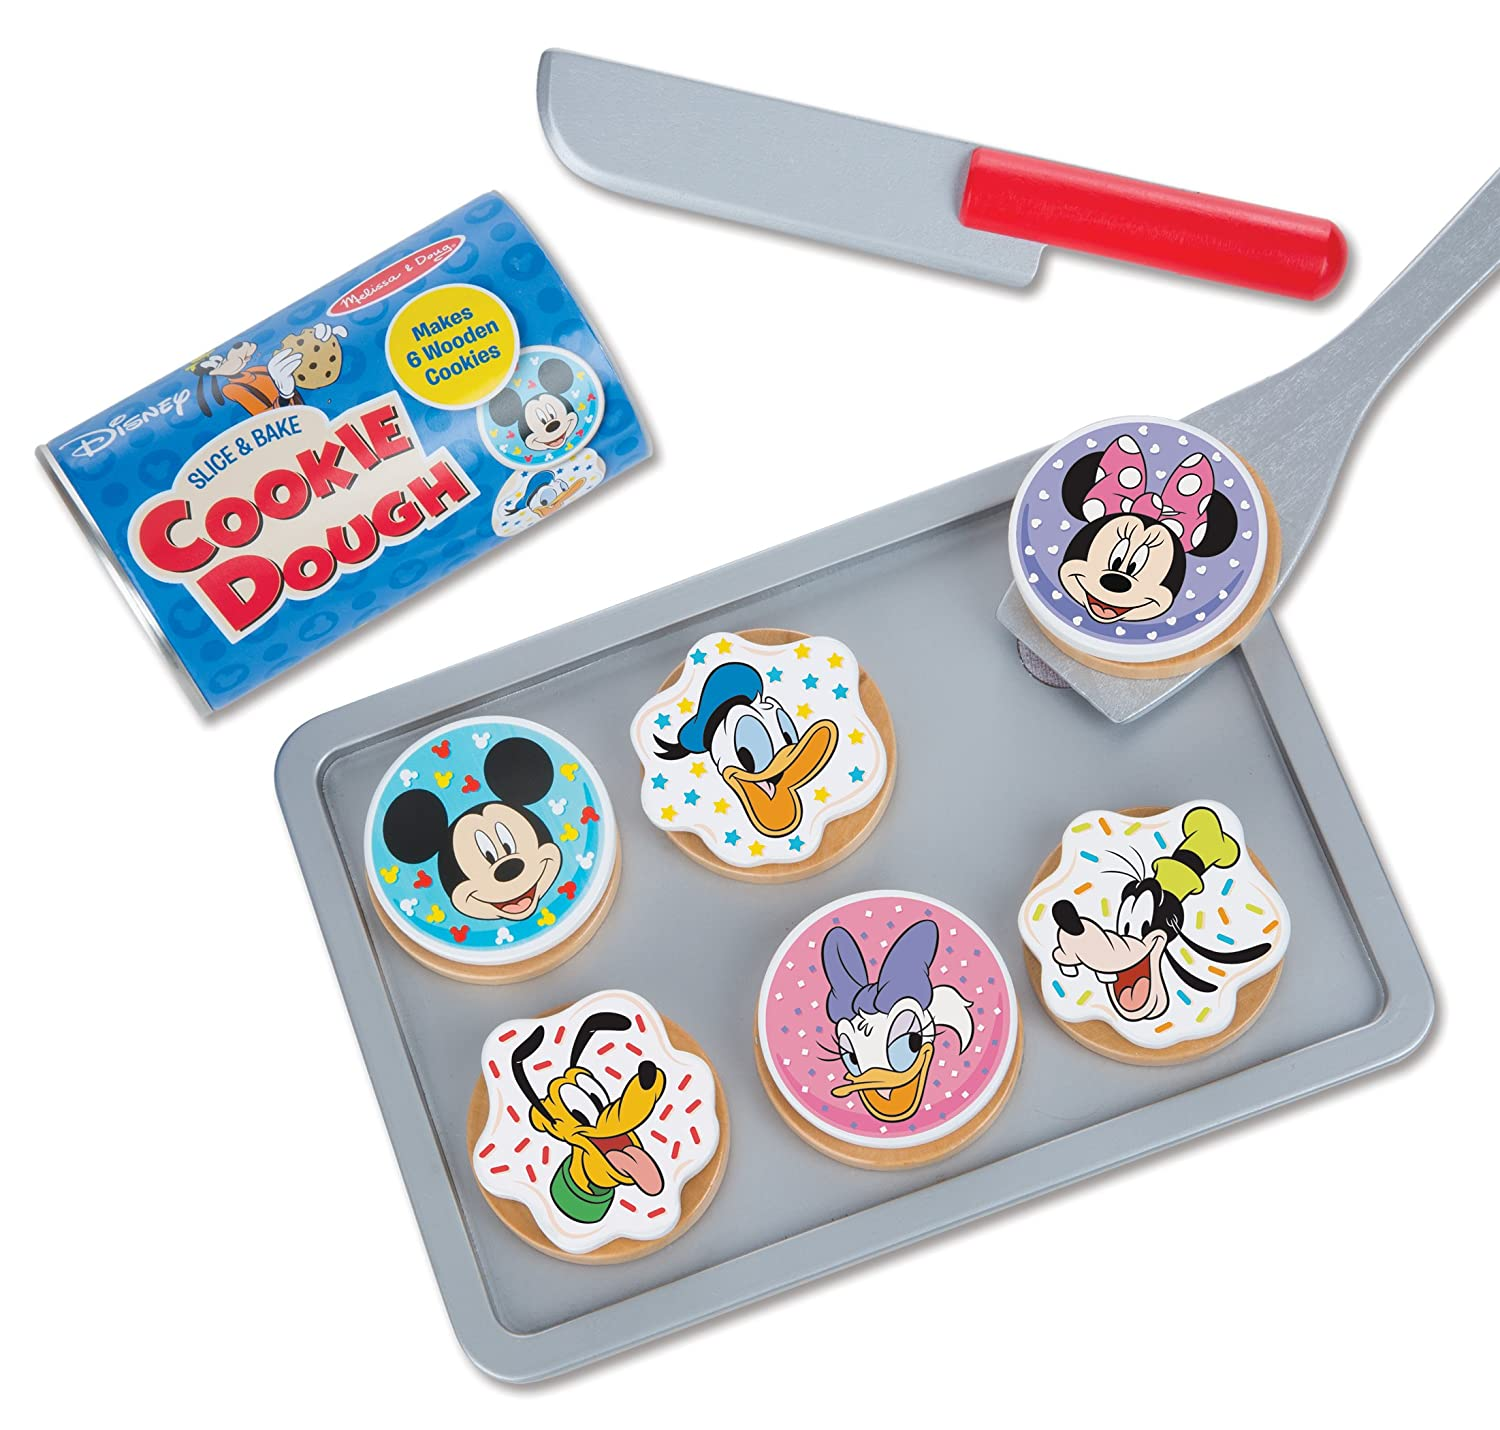 Make-Believe Baking Toy with Pretend Knife and Cookie Sheet Gift for Kids who Love Disney